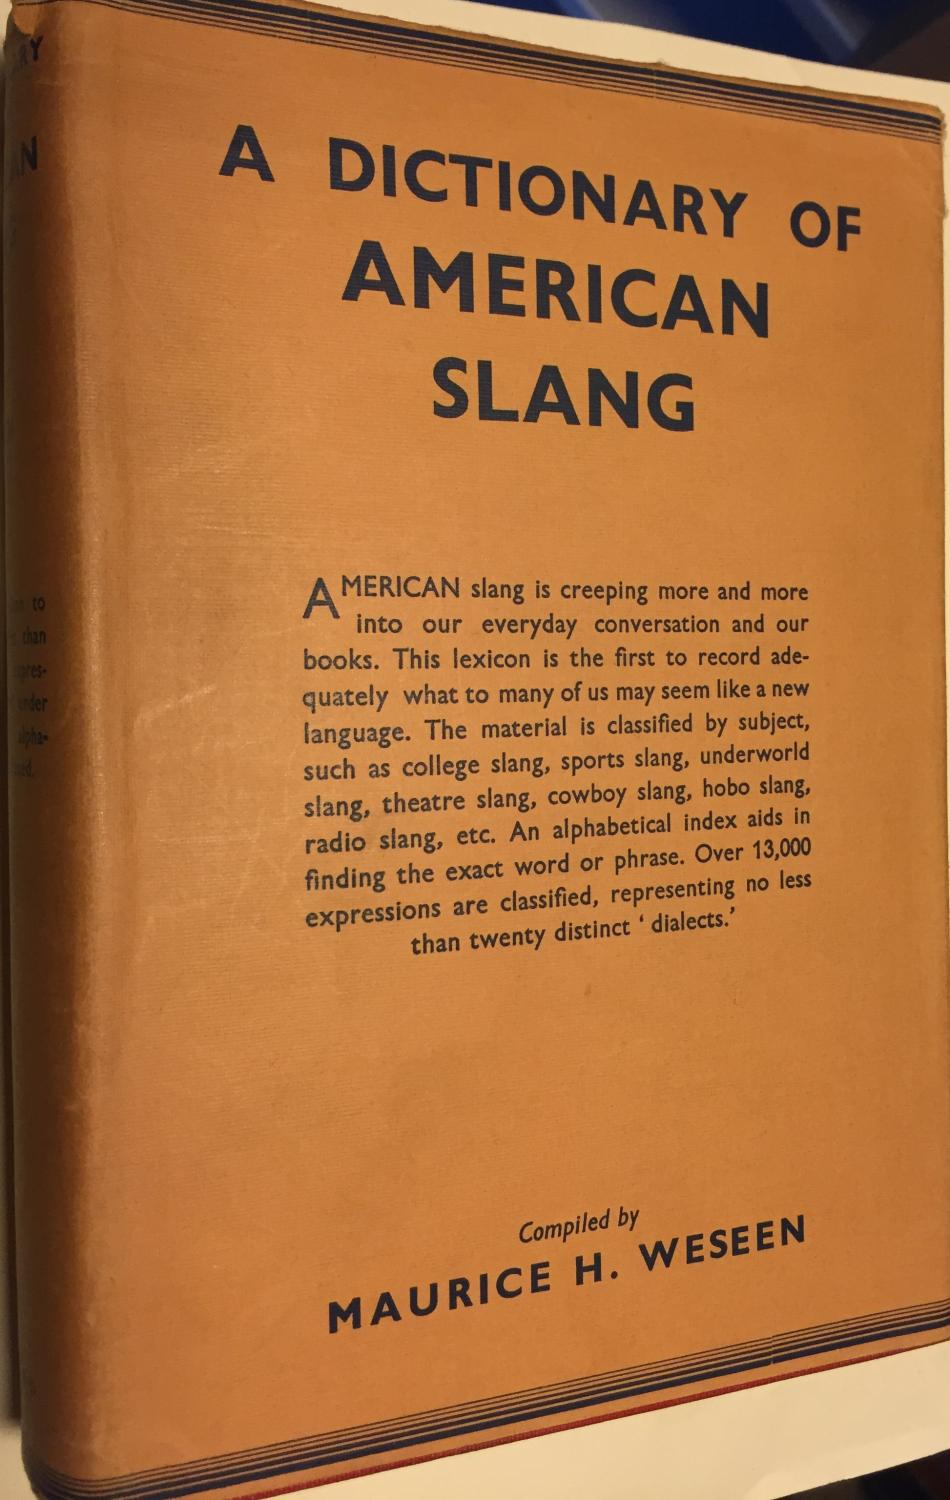 a dictionary of american slang by weseen maurice h. Black Bedroom Furniture Sets. Home Design Ideas